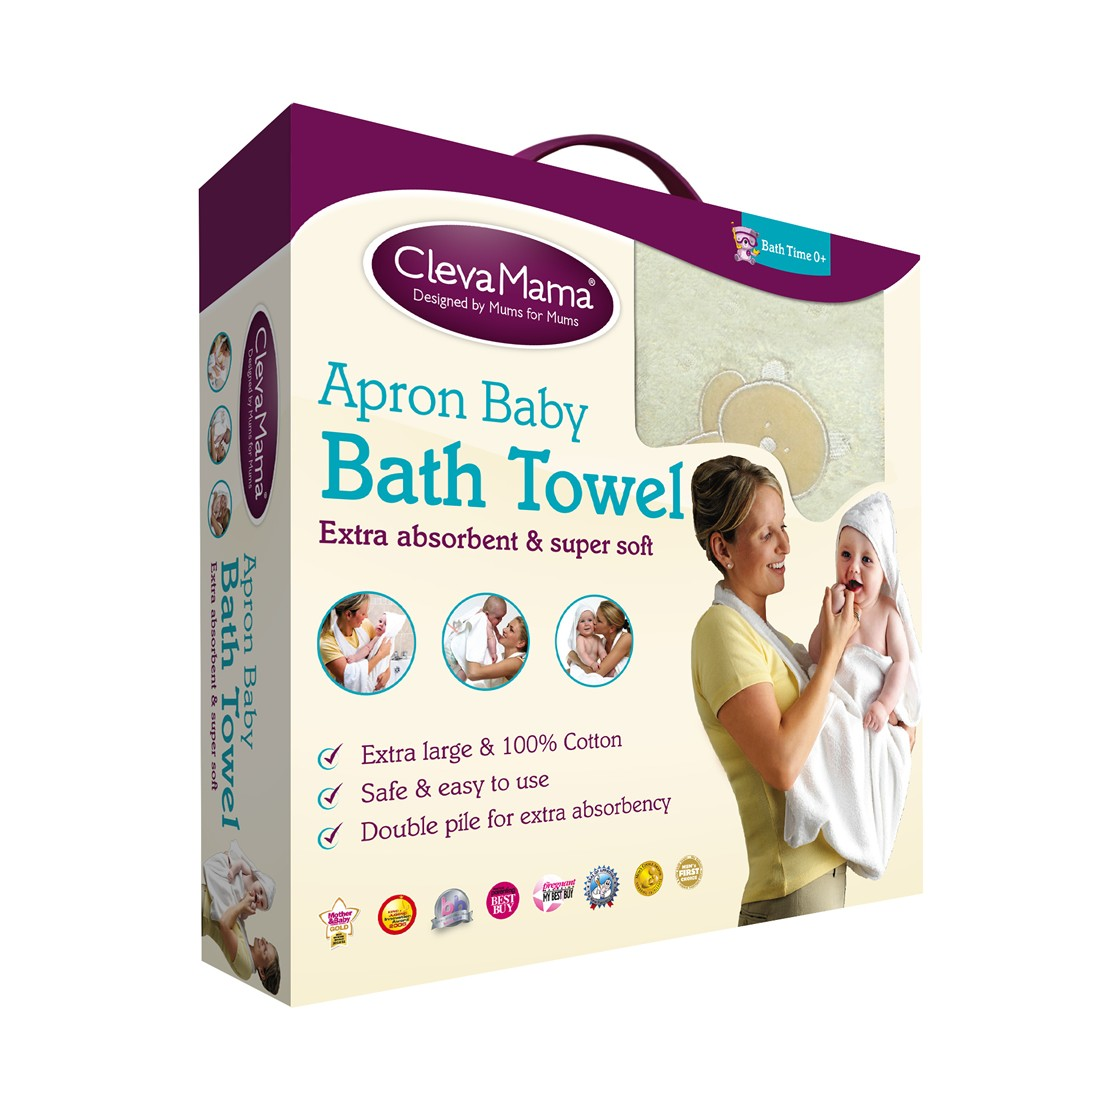 ClevaMama Apron Baby Bath Towel White